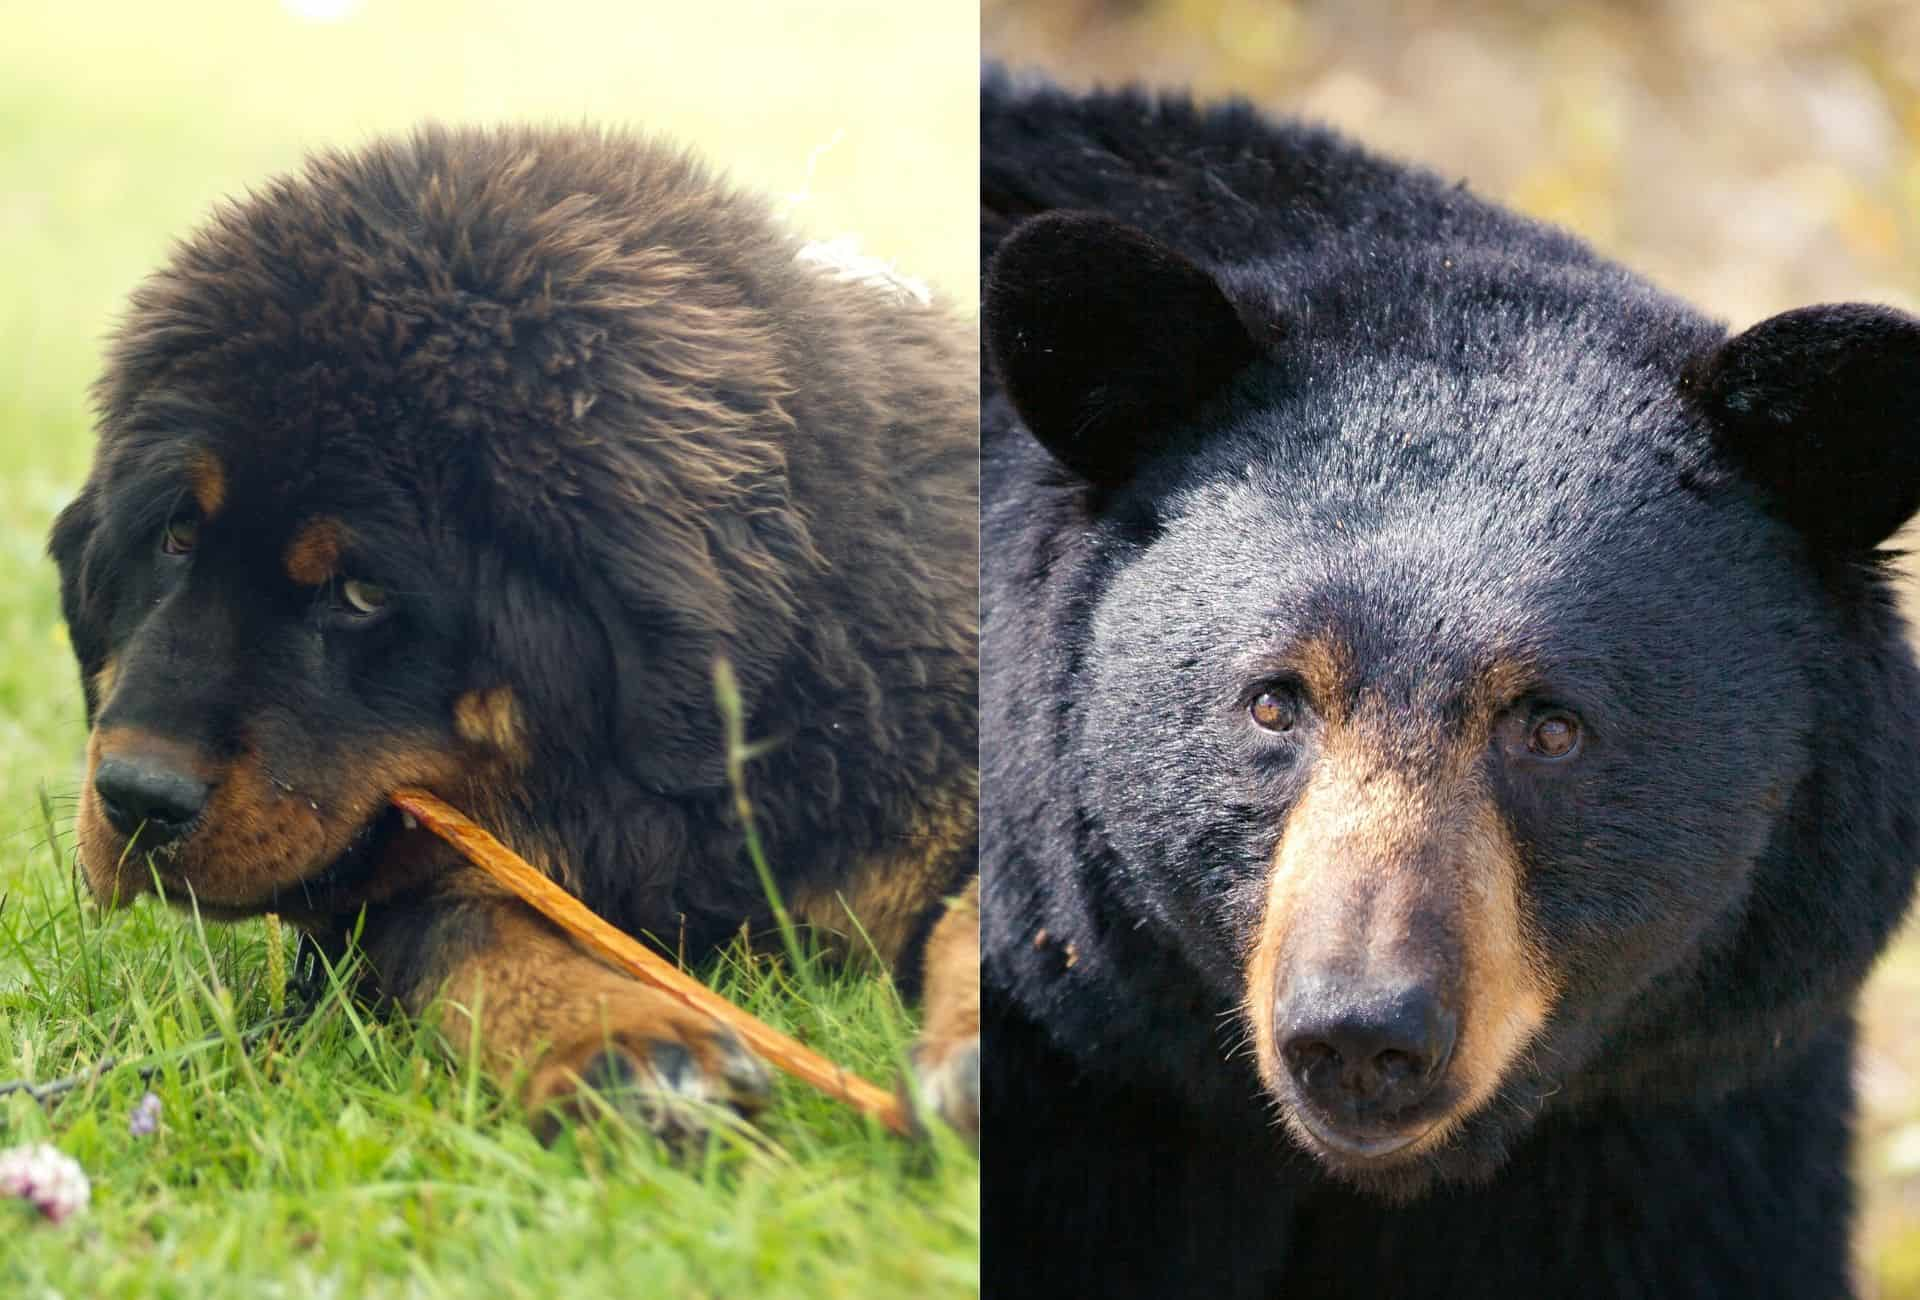 Tibetan Mastiff chewing on a stick on the left side compared to a similar-looking black bear on the right side.